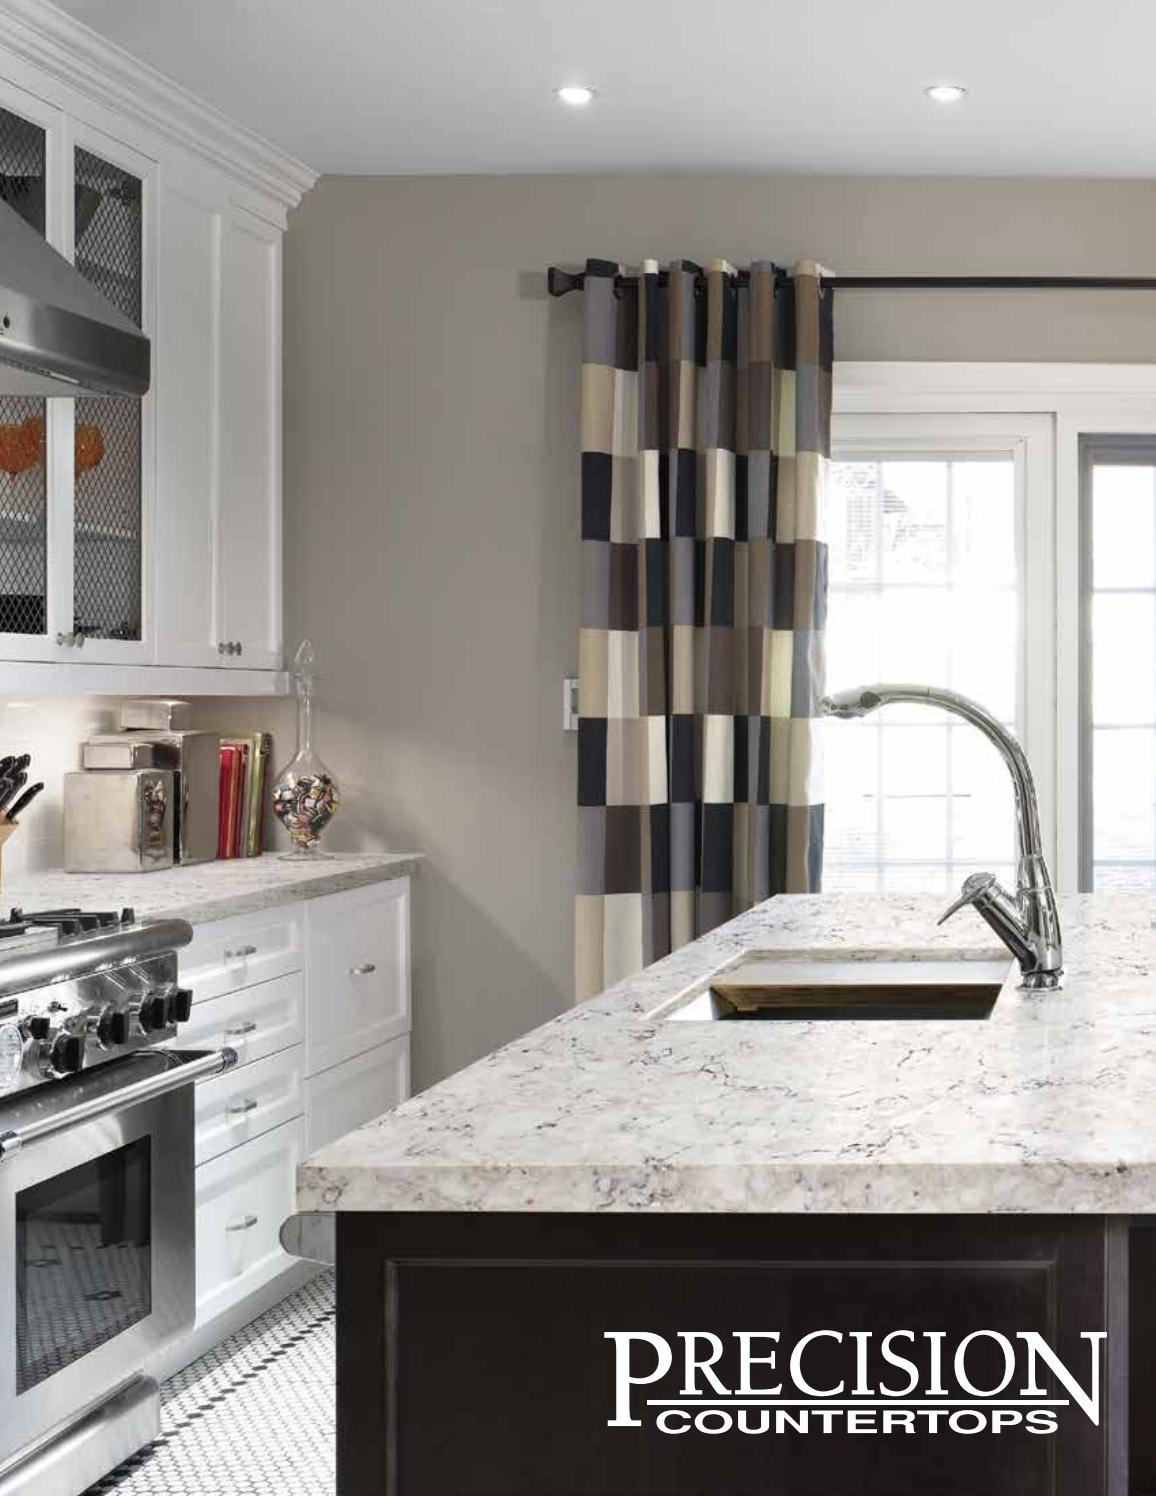 Pct Design Guide 2018 By Precision Countertops Issuu